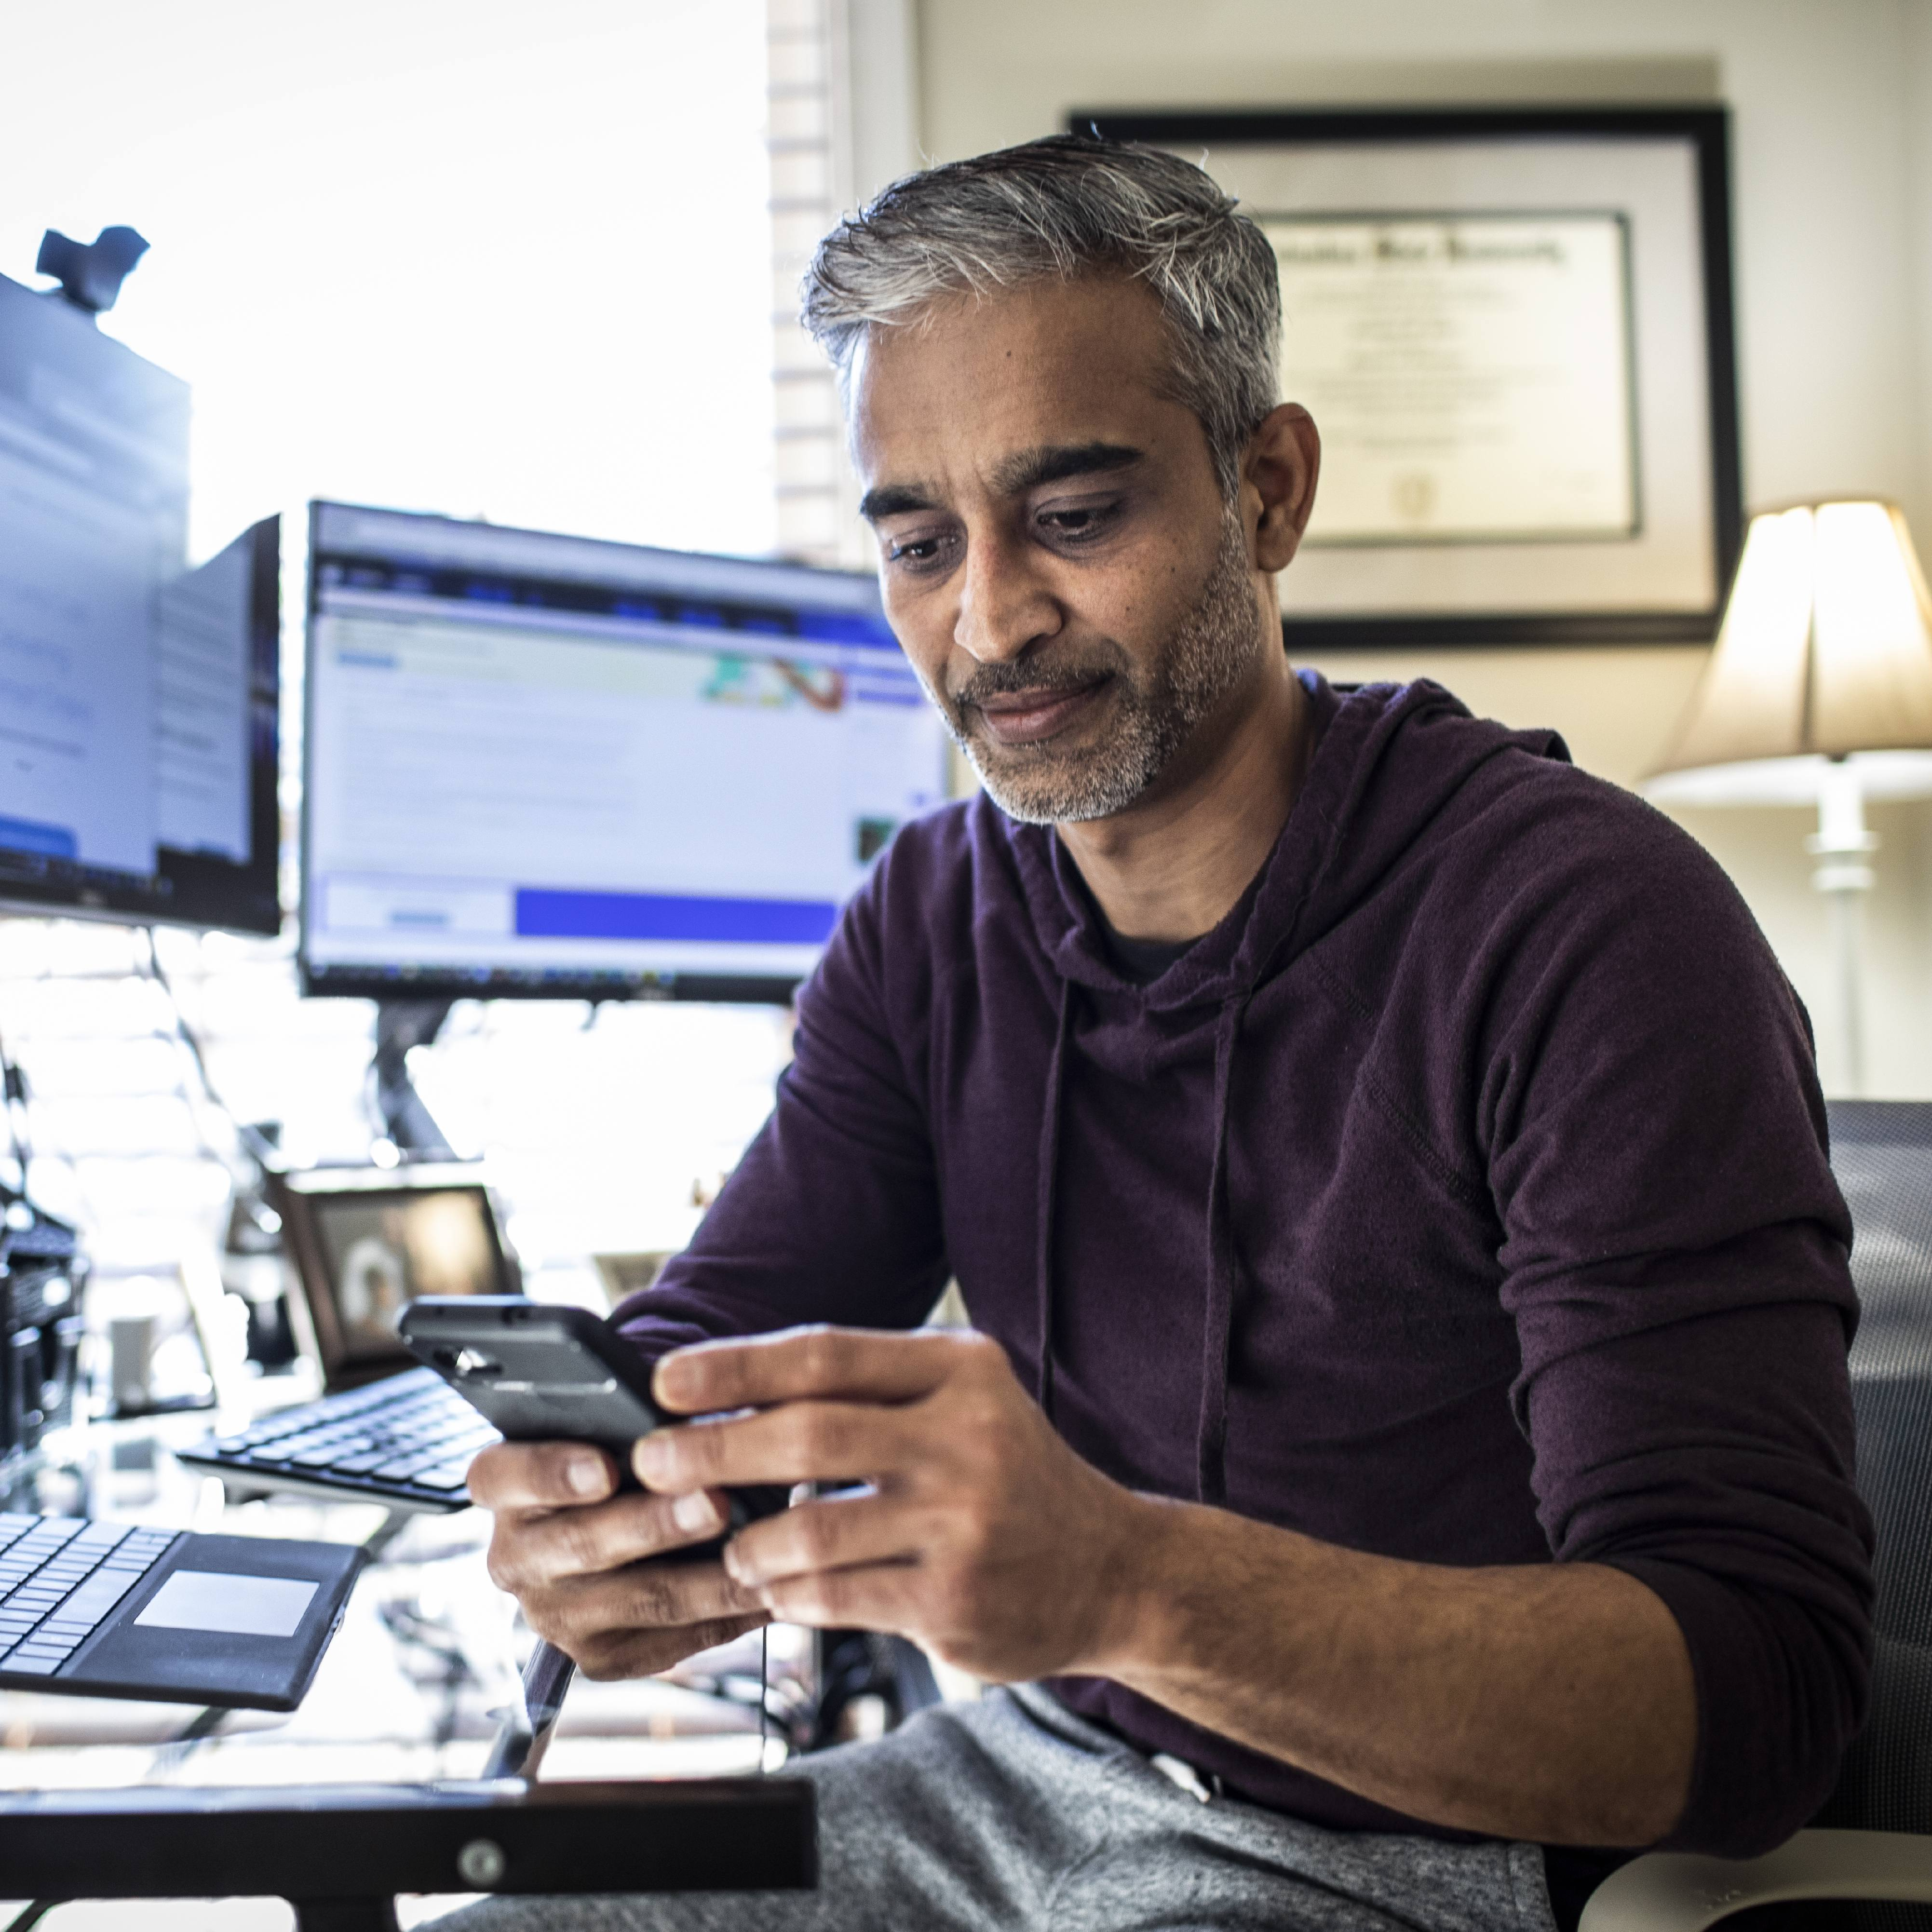 middle aged man, perhaps Middle Eastern, sitting at a home office desk with computer monitors